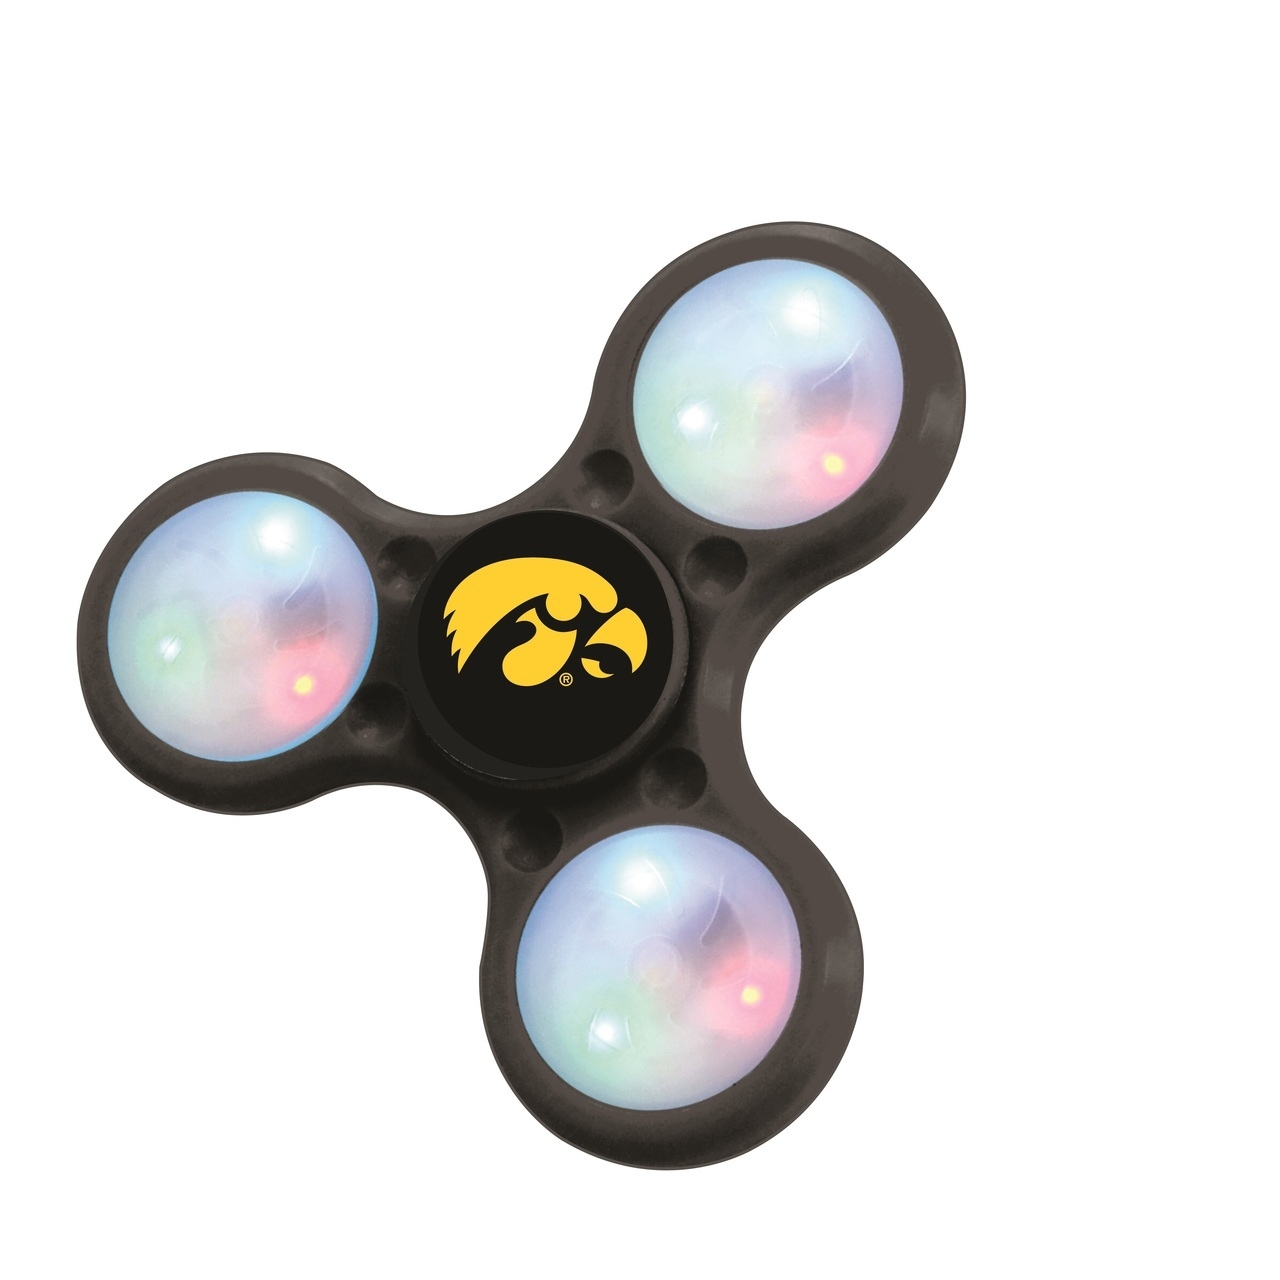 Iowa Hawkeyes Spinners 3 Prong Led Style - 6326471285 - Ncaa College Iowa Iowa Hawkeyes Toys Games Puzzles Games 6326471285